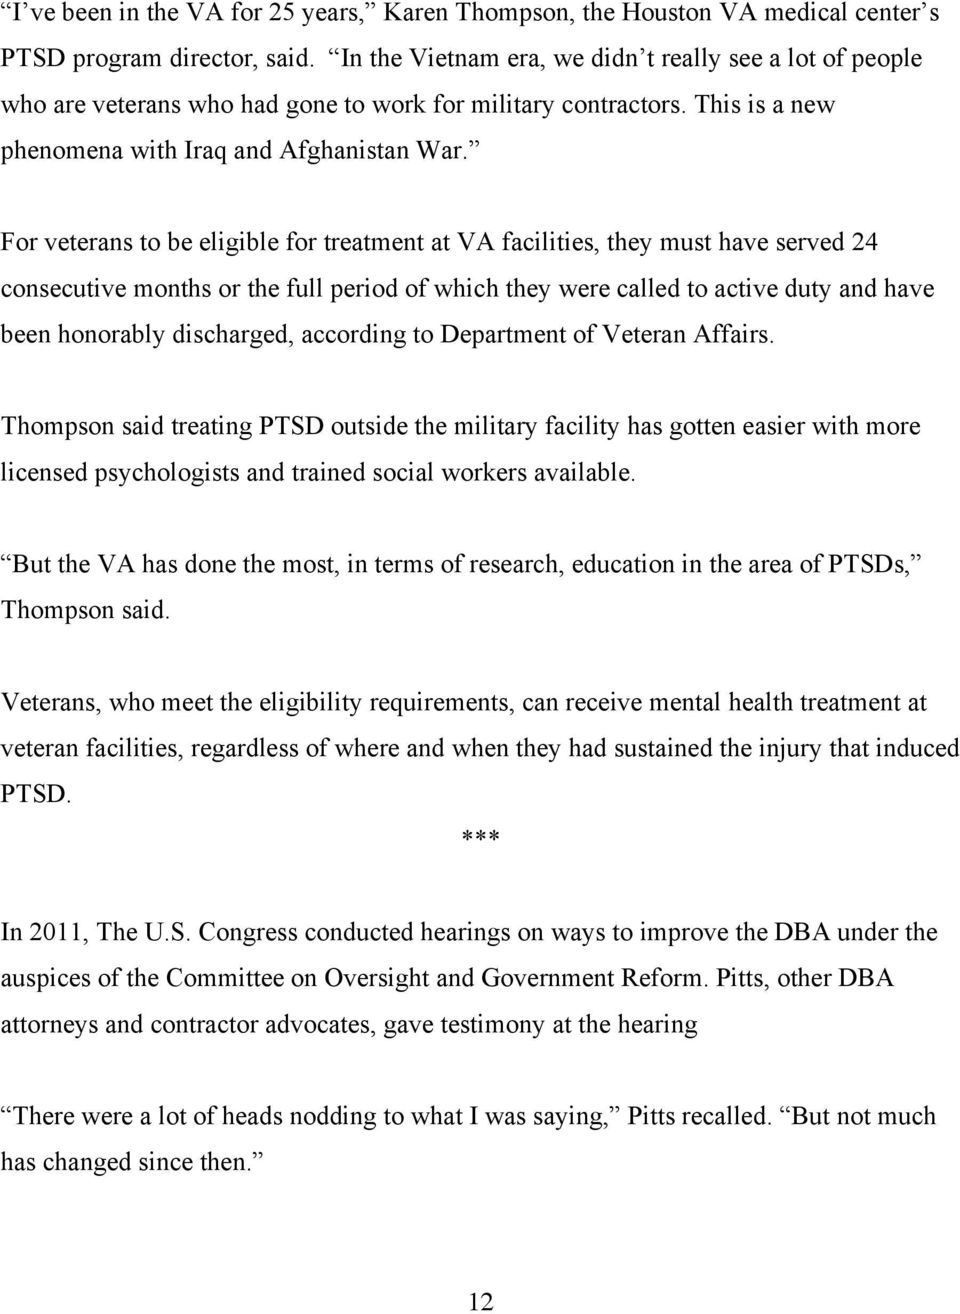 For veterans to be eligible for treatment at VA facilities, they must have served 24 consecutive months or the full period of which they were called to active duty and have been honorably discharged,